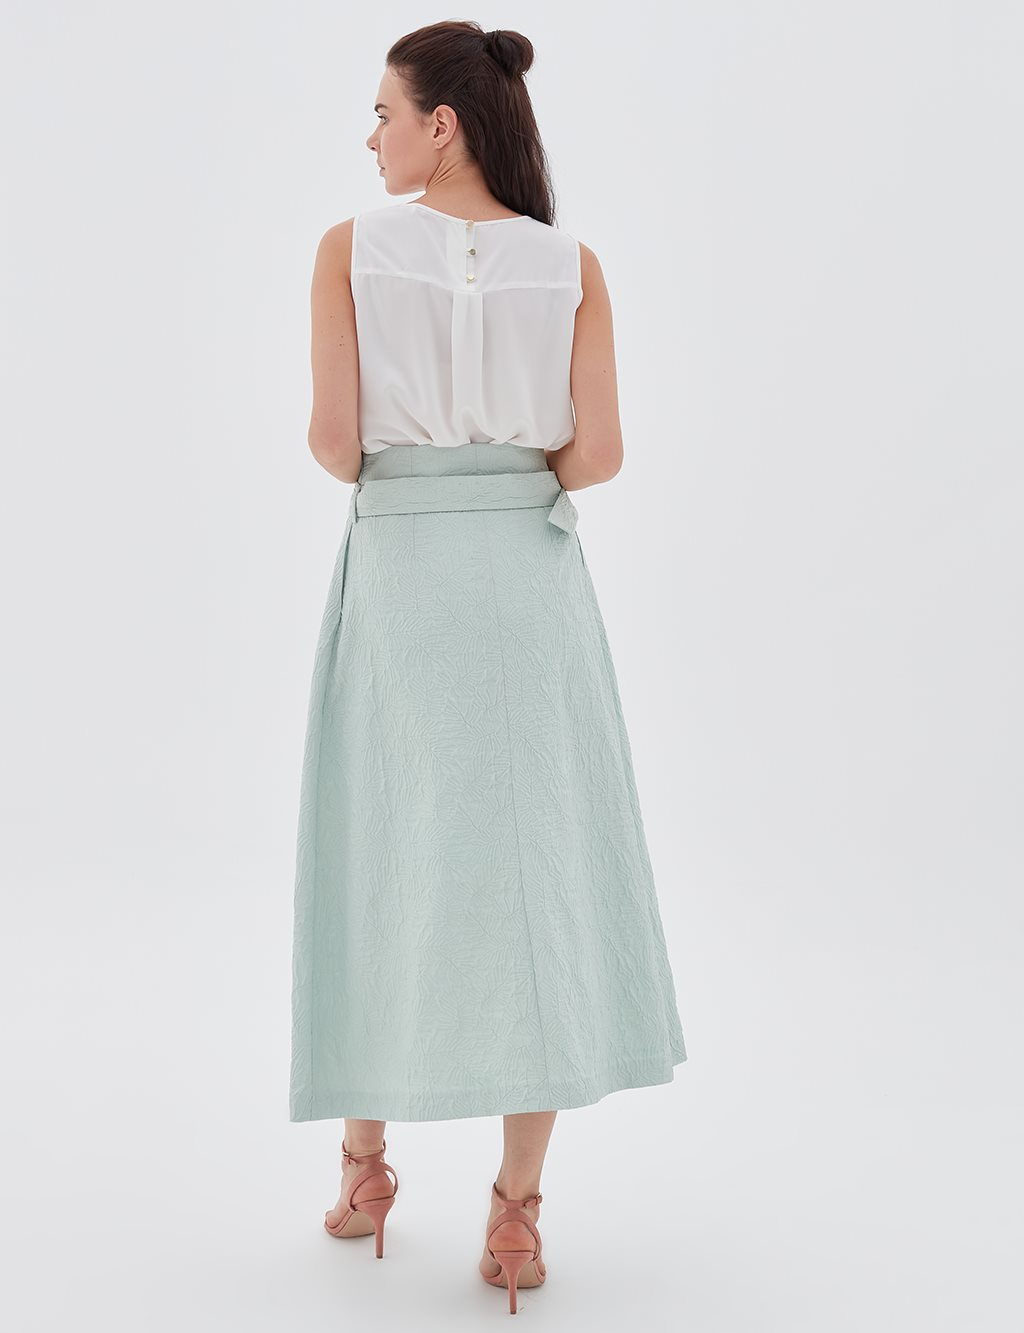 Skirt With Detailed Belt B20 12064 Water Green